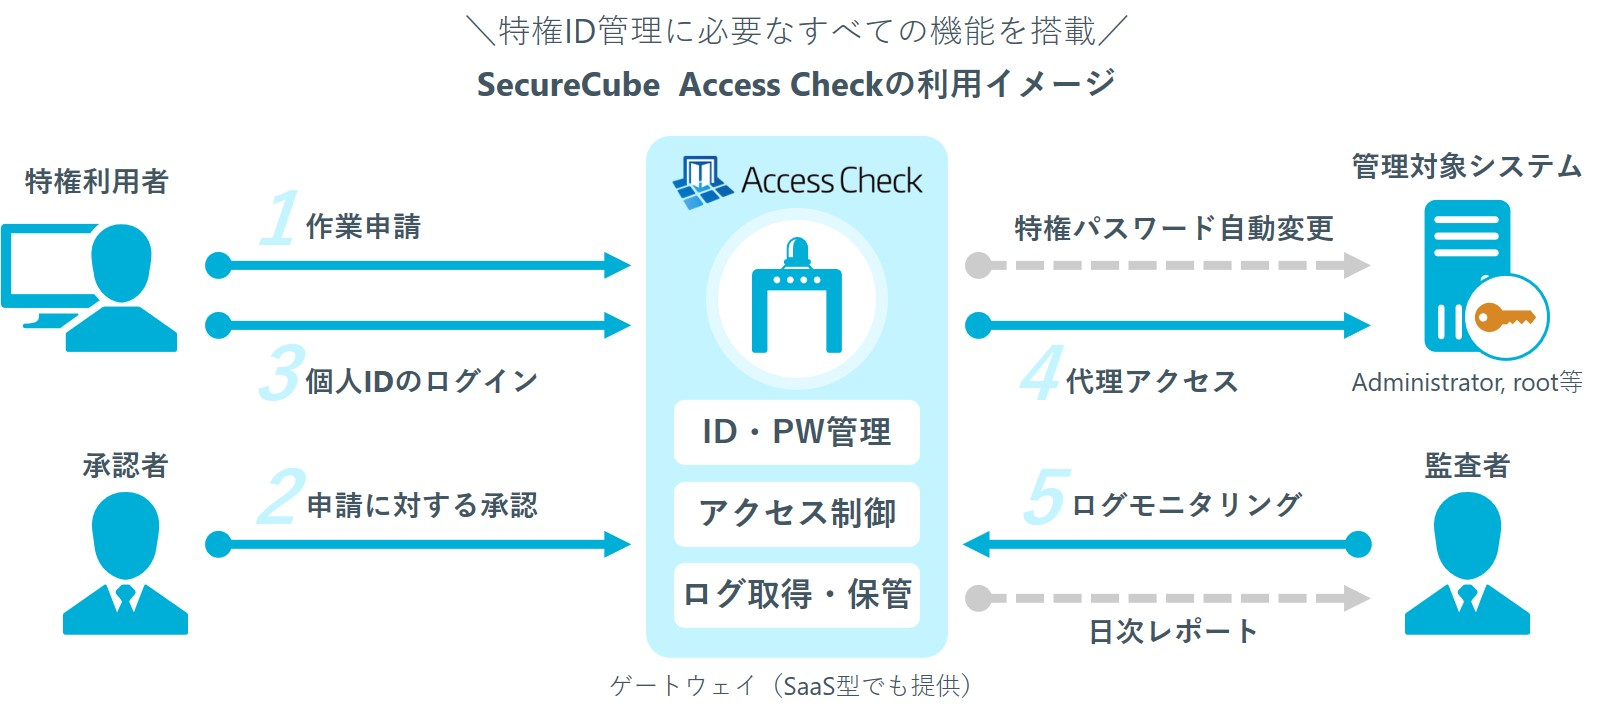 SecureCube  Access Checkの利用イメージ